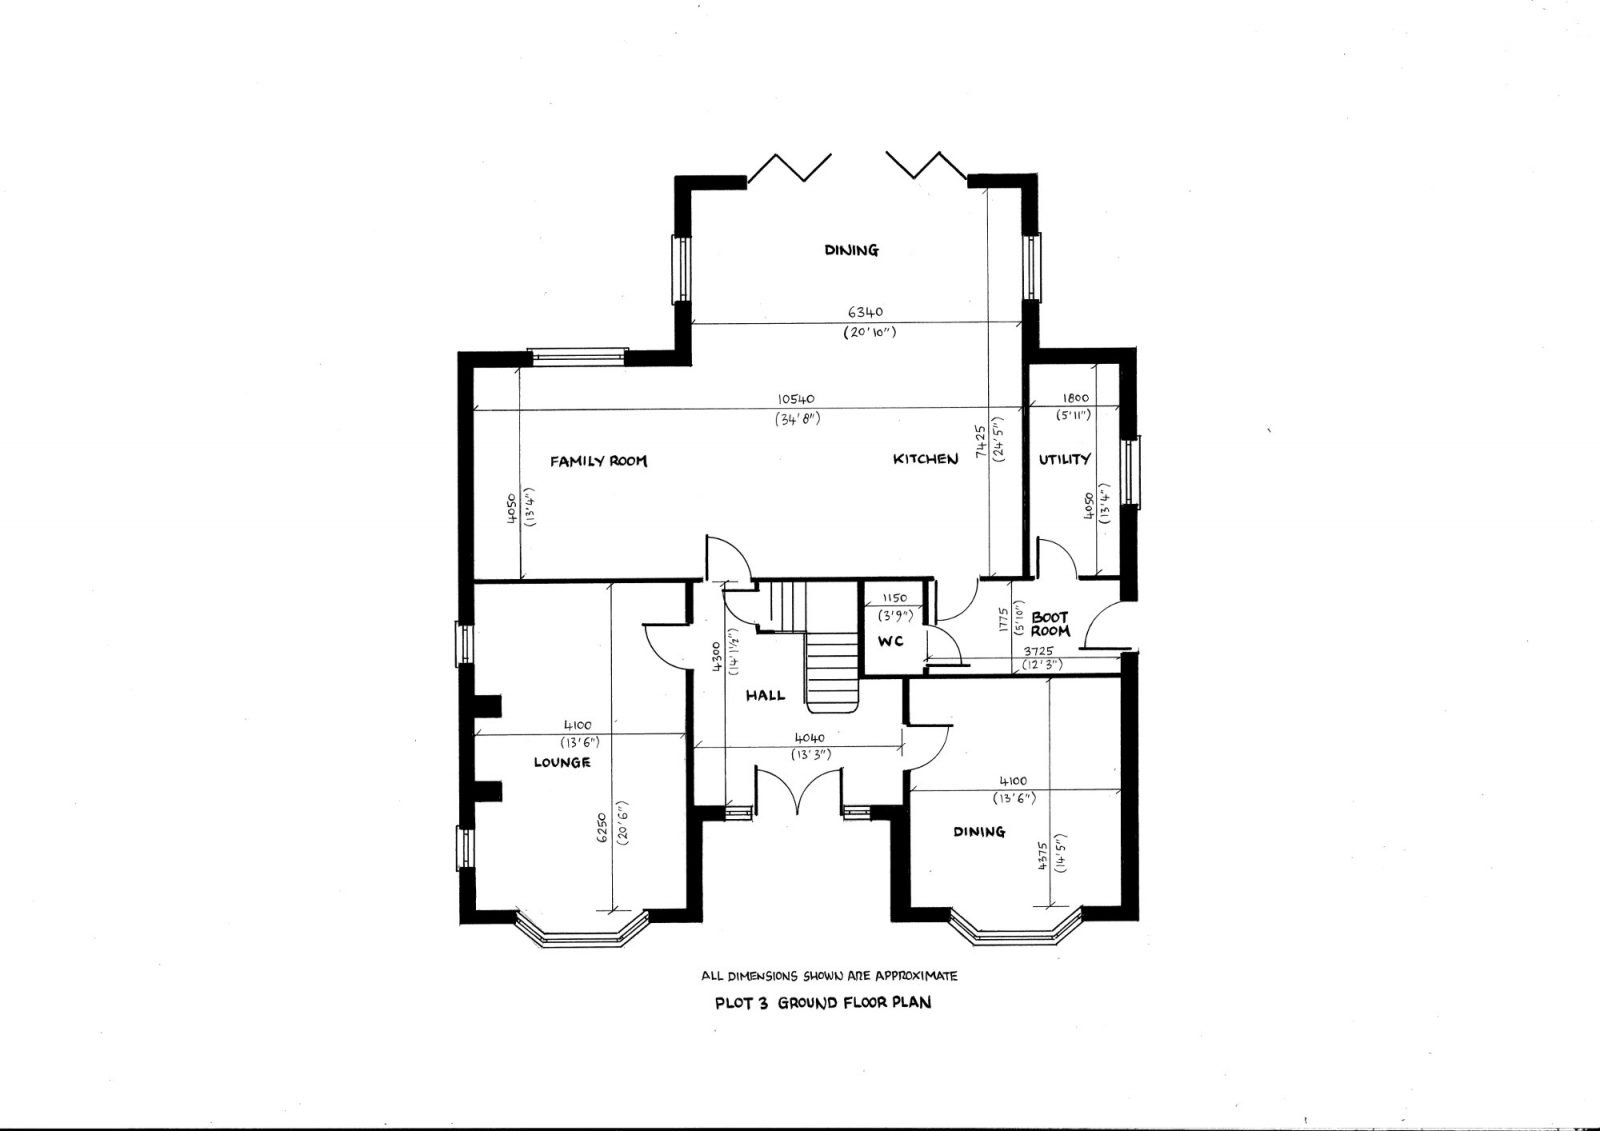 plot-3-ground-floor-plan